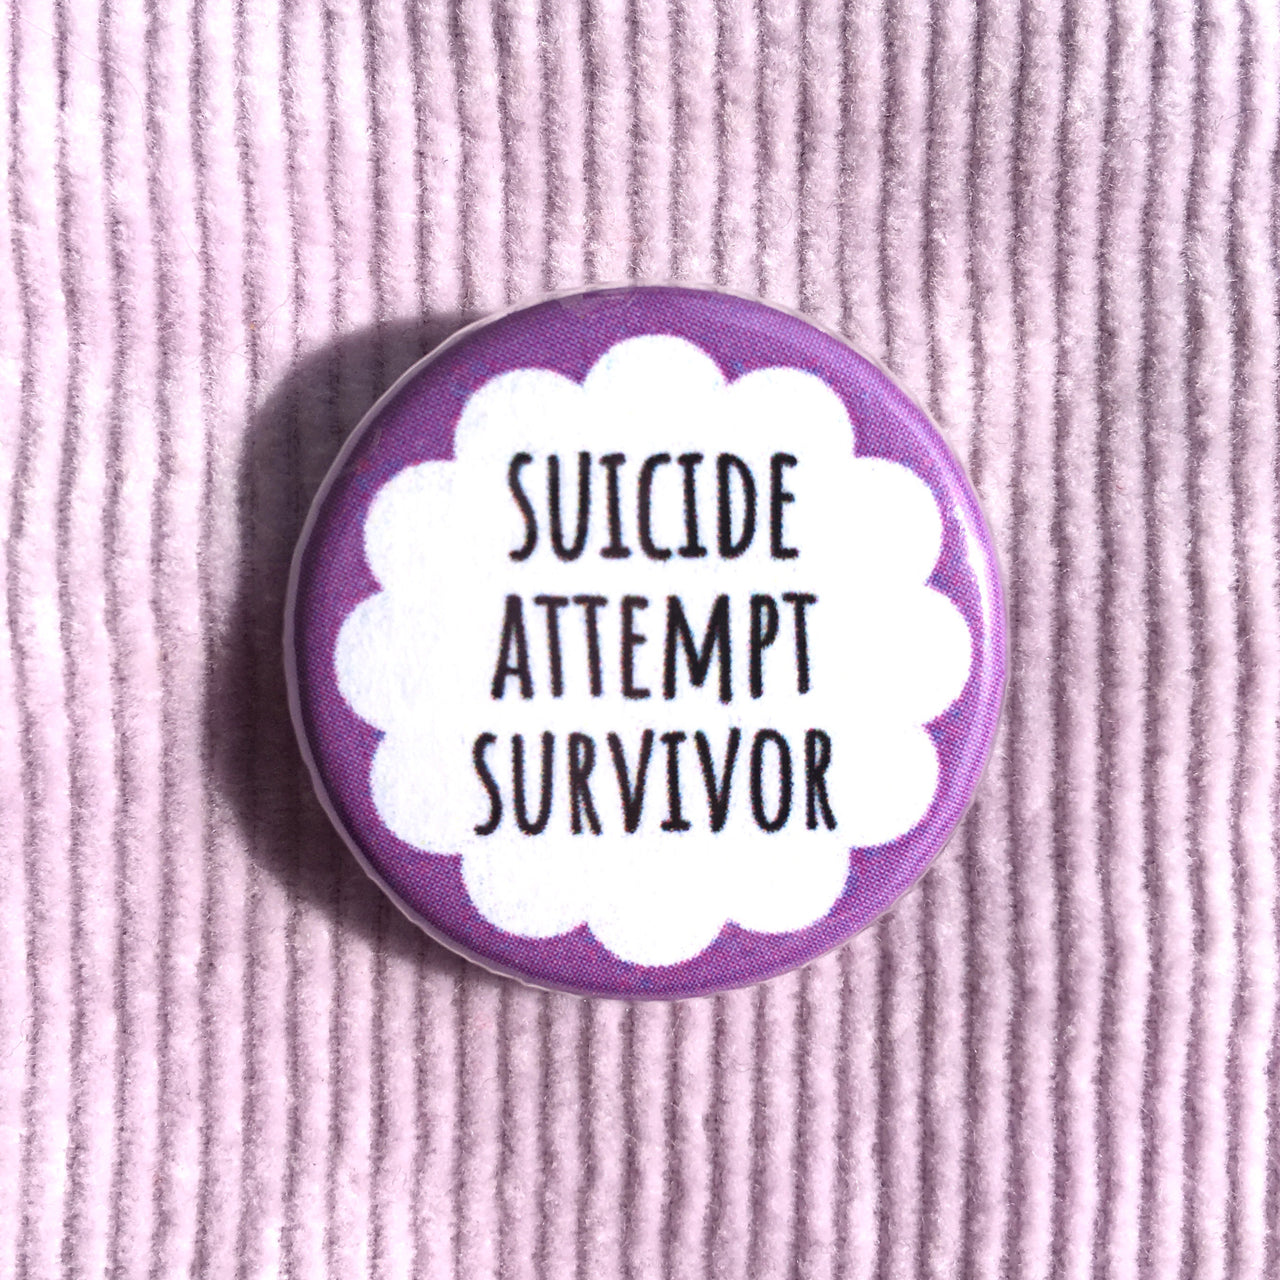 Suicide attempt survivor - Radical Buttons